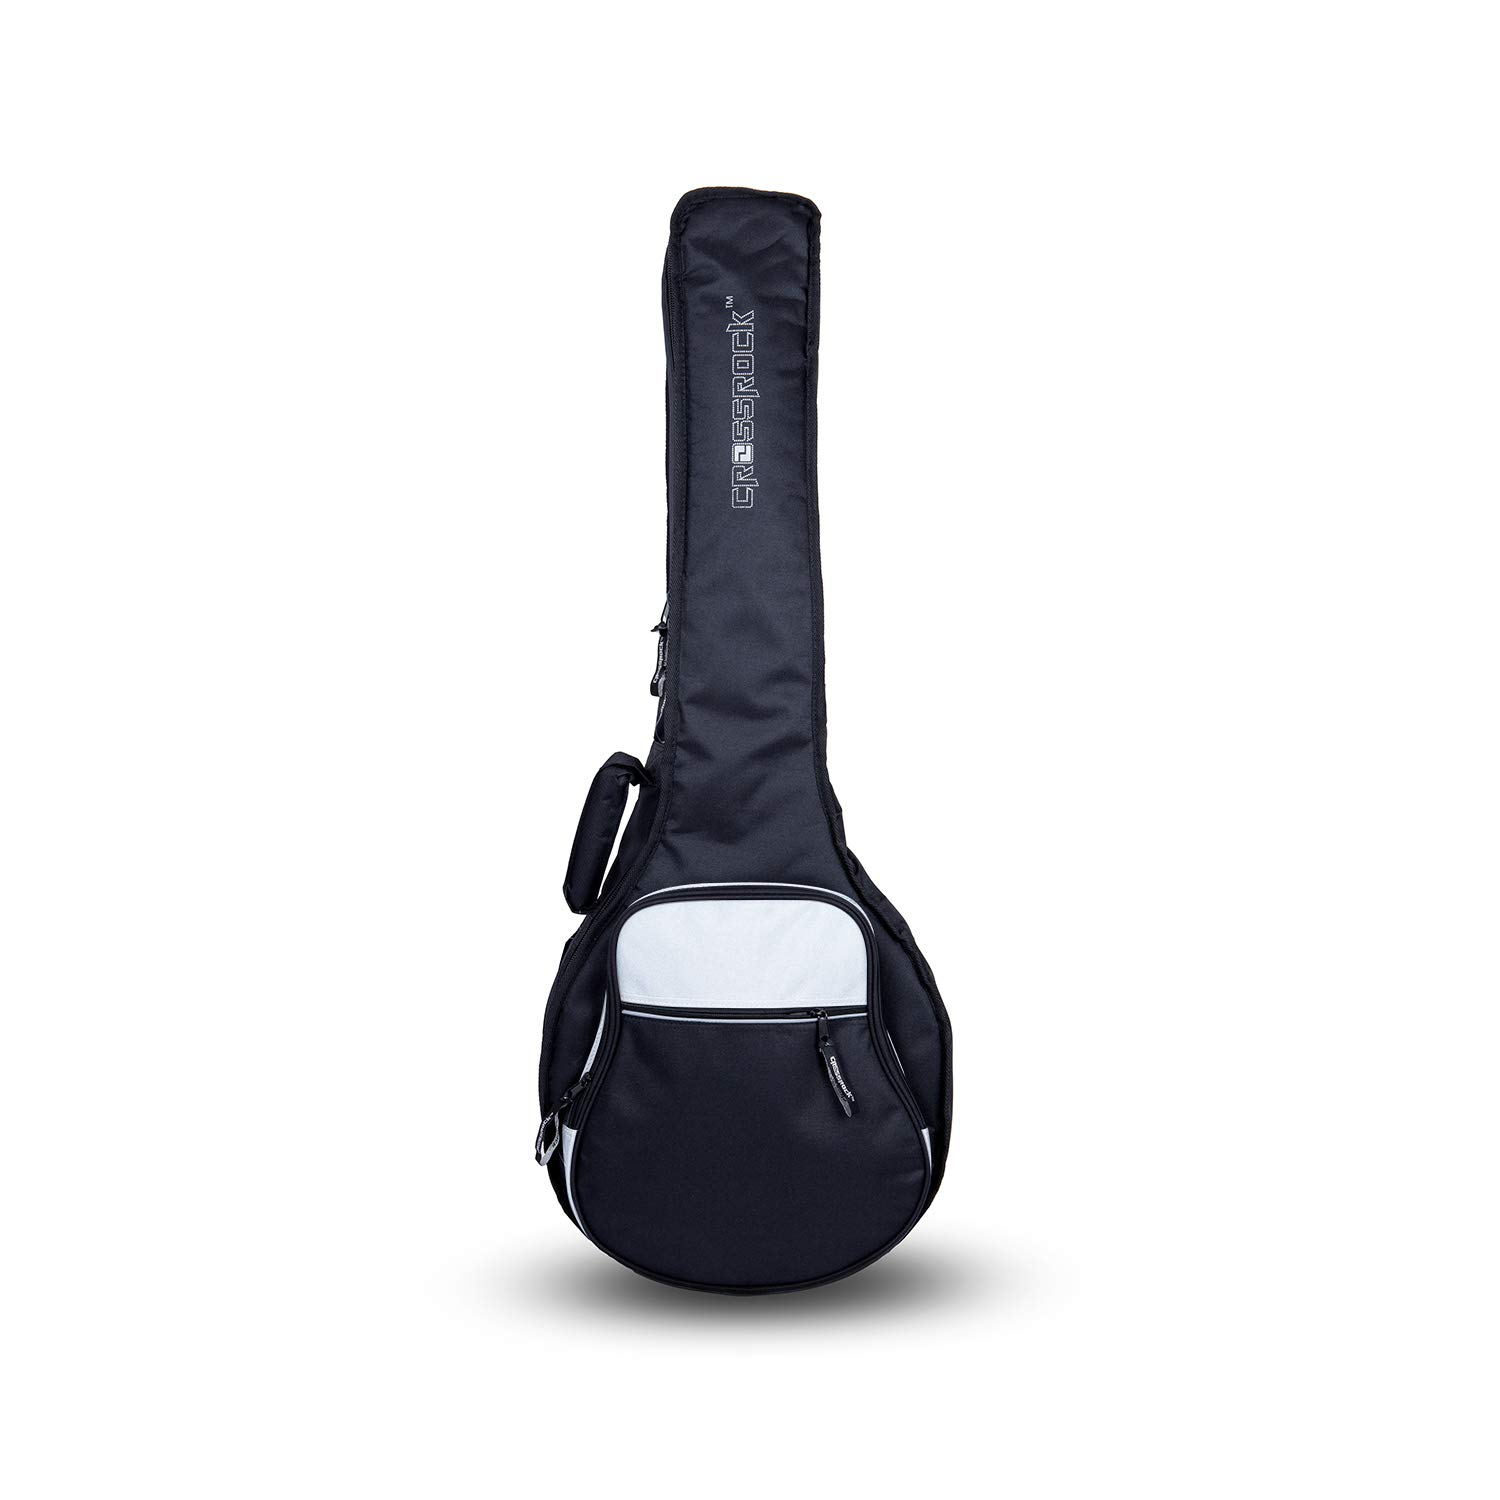 Crossrock 10mm Padding Gig Bag for Open Back /& Resonator Banjos Backpack Straps Black CRSG106BJBK